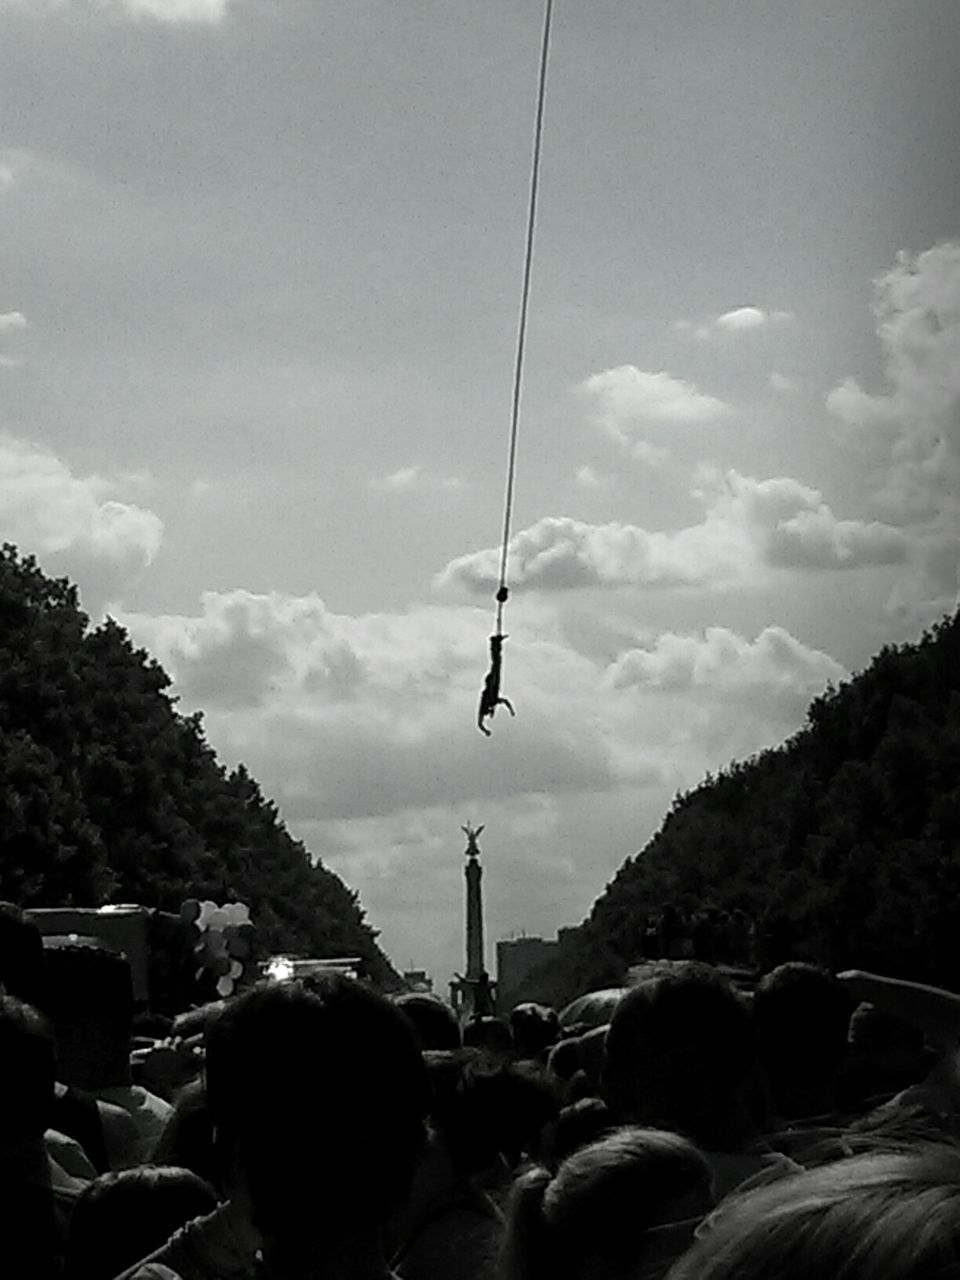 People Watching Bungee Jumping Against Sky